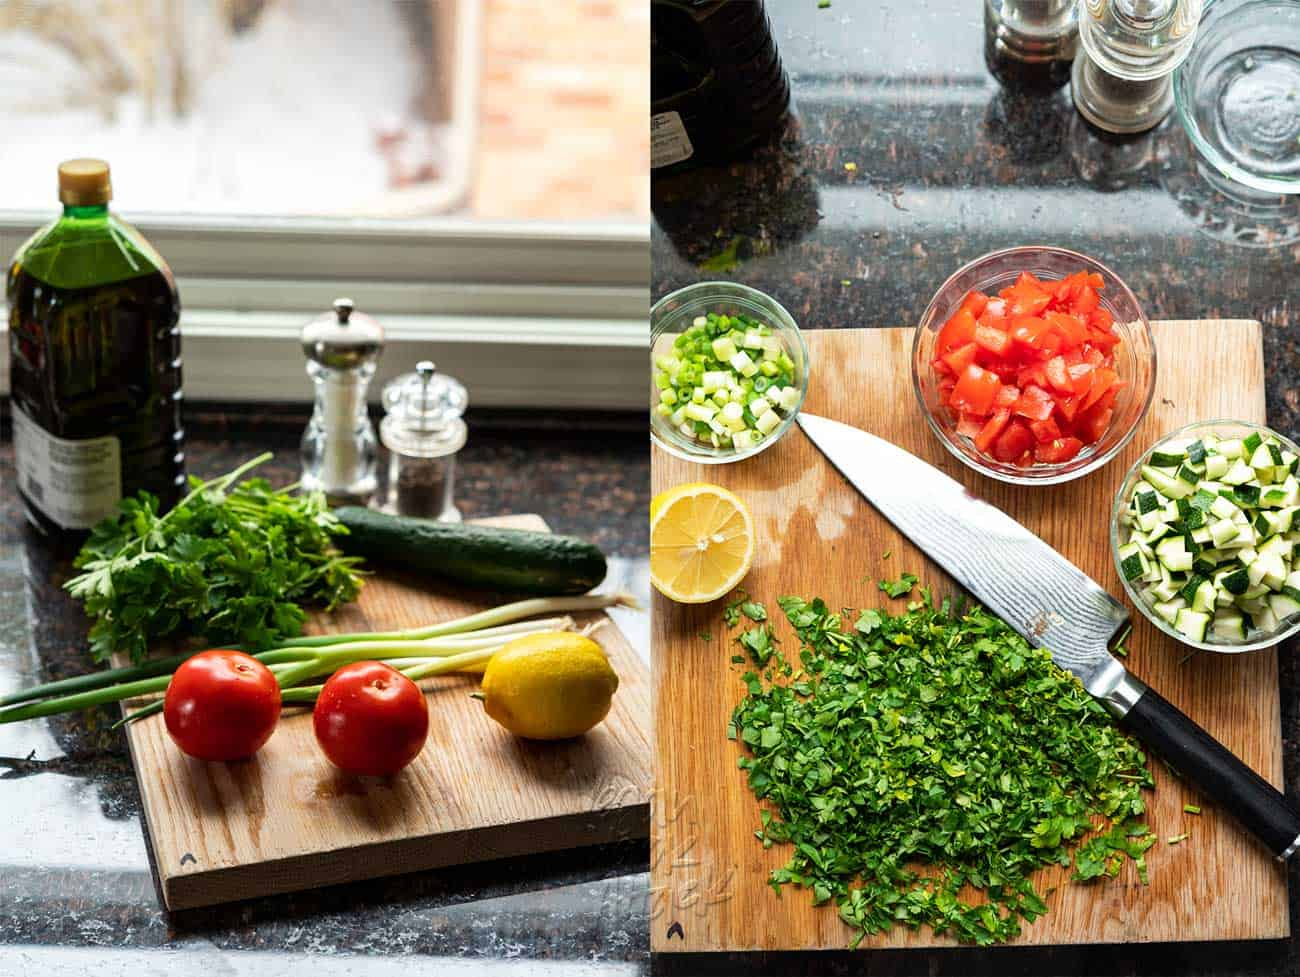 Two images of fresh ingredients for tabbouleh, on right the ingredients are chopped and prepped